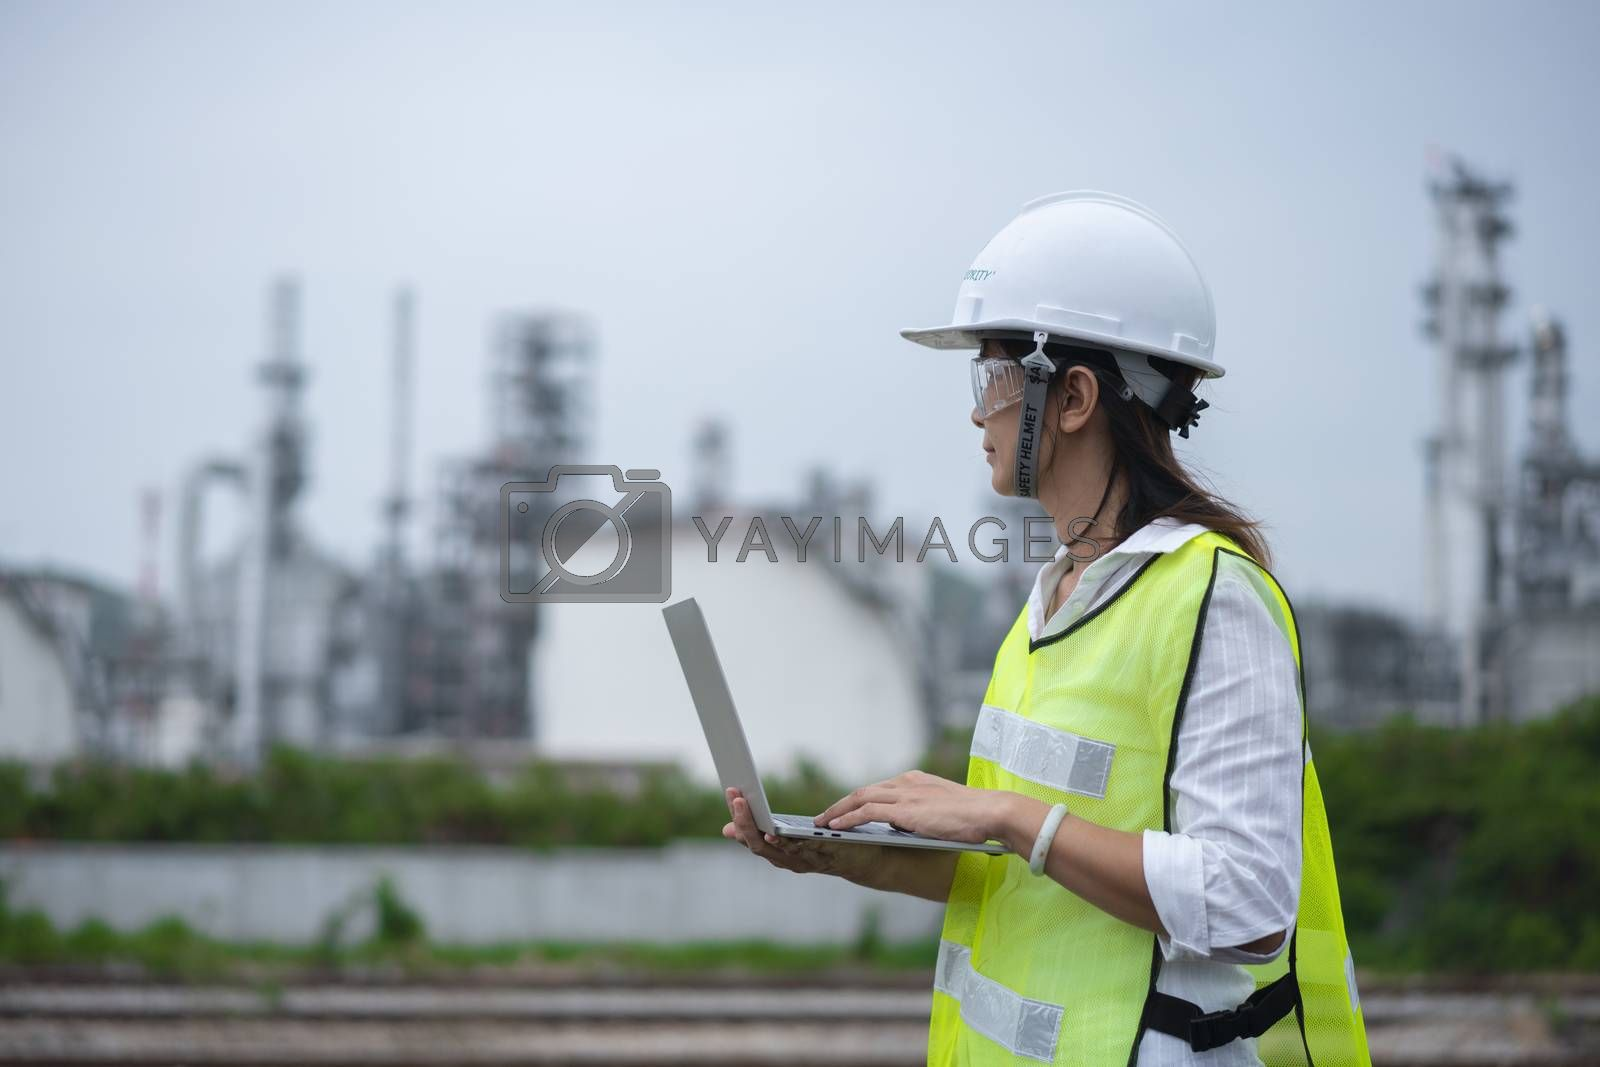 The people worker women engineer work control at power plant energy industry manufacturing oil refinery. petrochemical plant